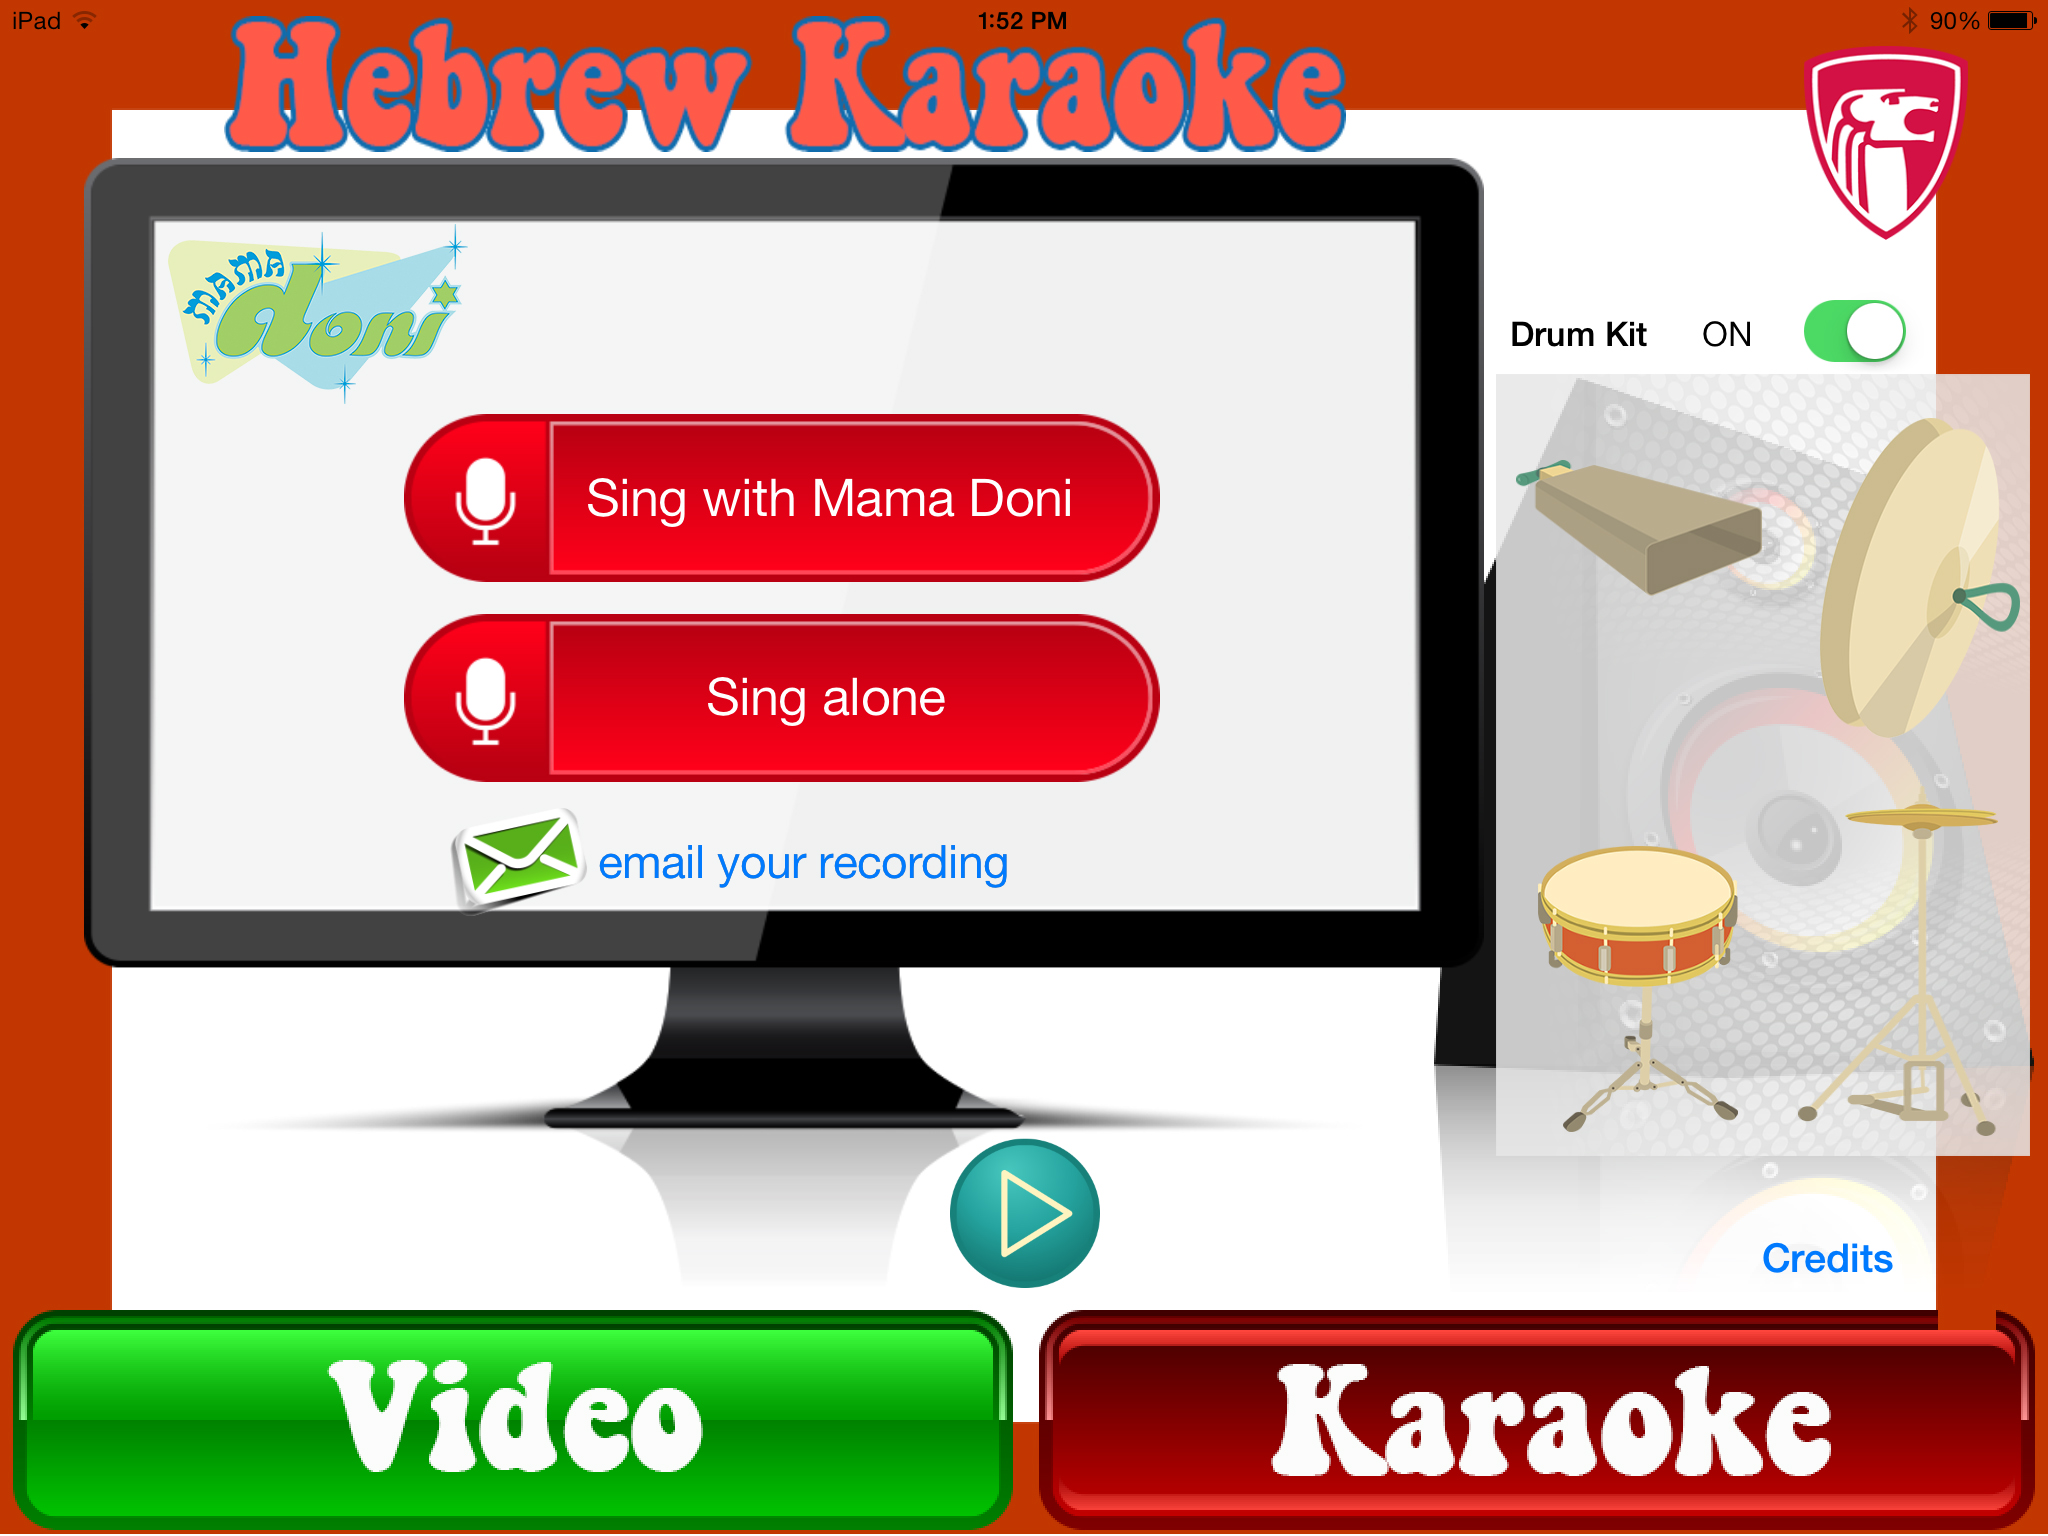 Take a Look at the New Hebrew Karaoke App! | Behrman House